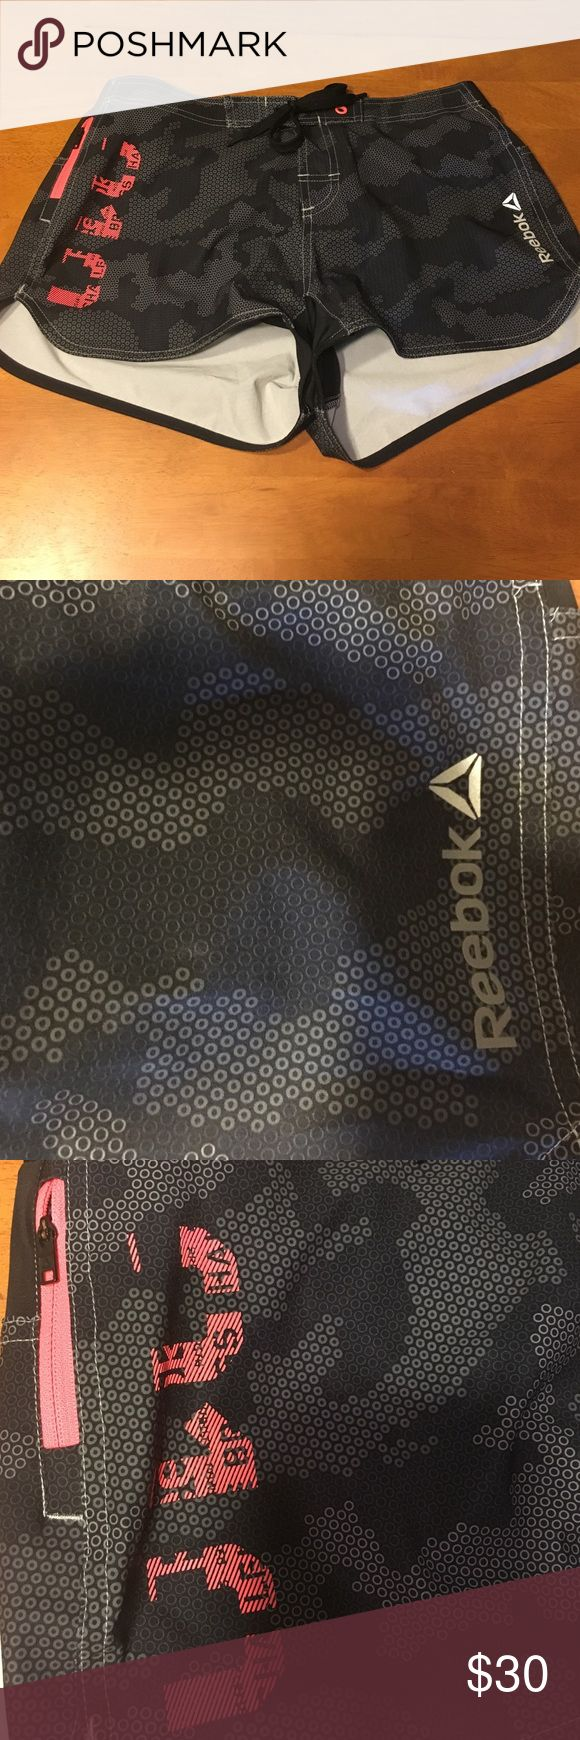 Reebok CrossFit shorts Rebook CrossFit shorts with front tie and orange trim. Never worn. Reebok Shorts